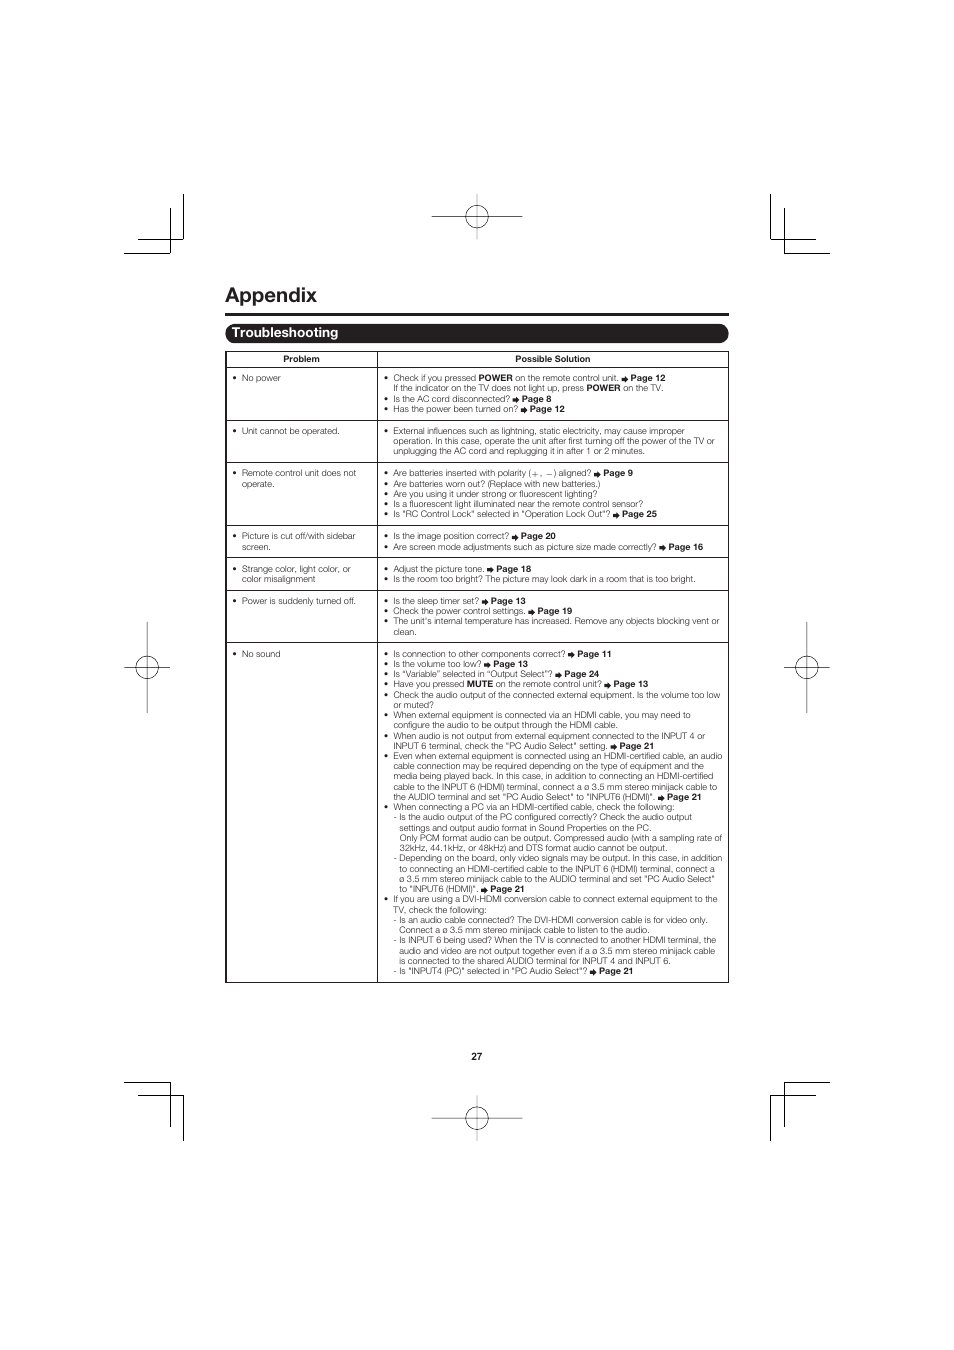 Appendix, Troubleshooting | Sharp AQUOS LC-40D68UT User Manual